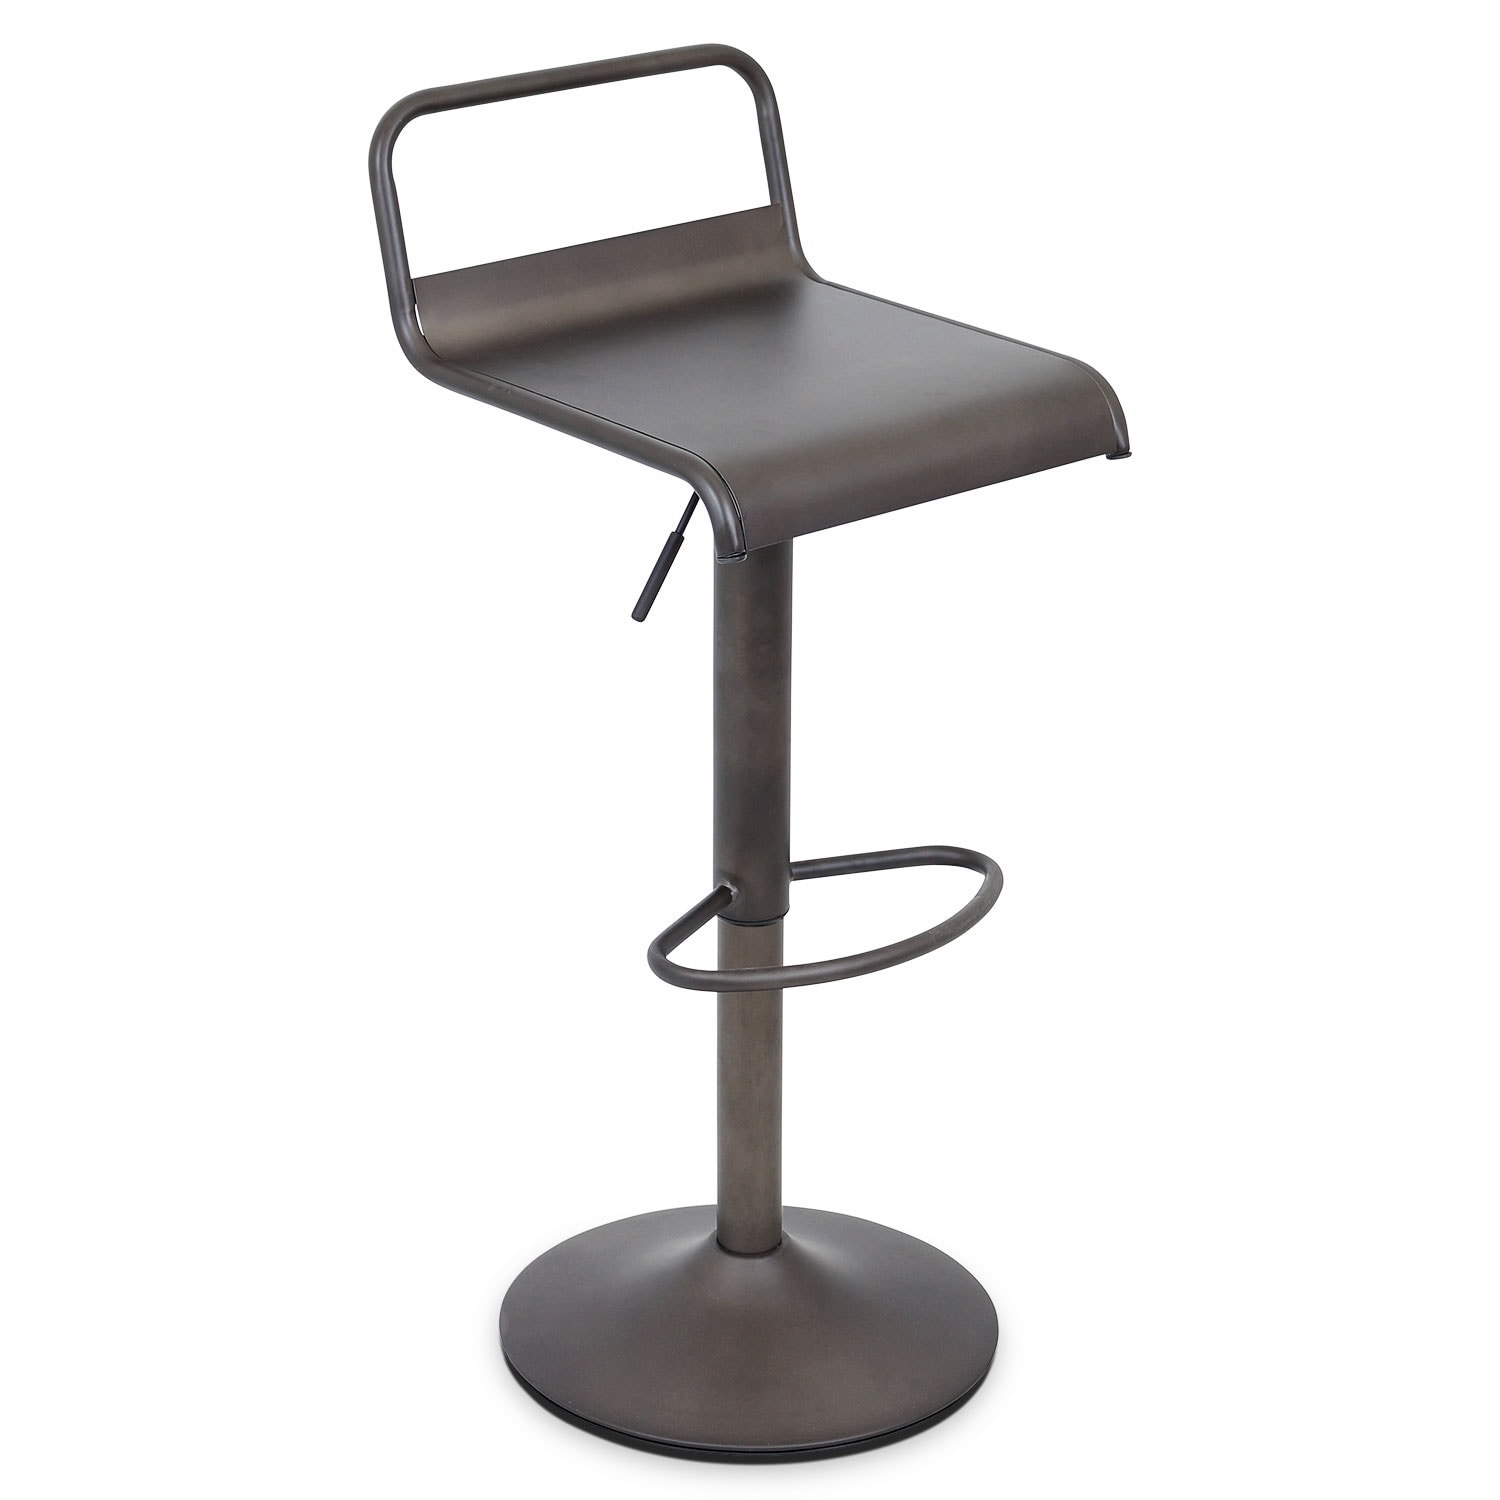 Dining Room Furniture - Duran Adjustable Barstool - Antique Black